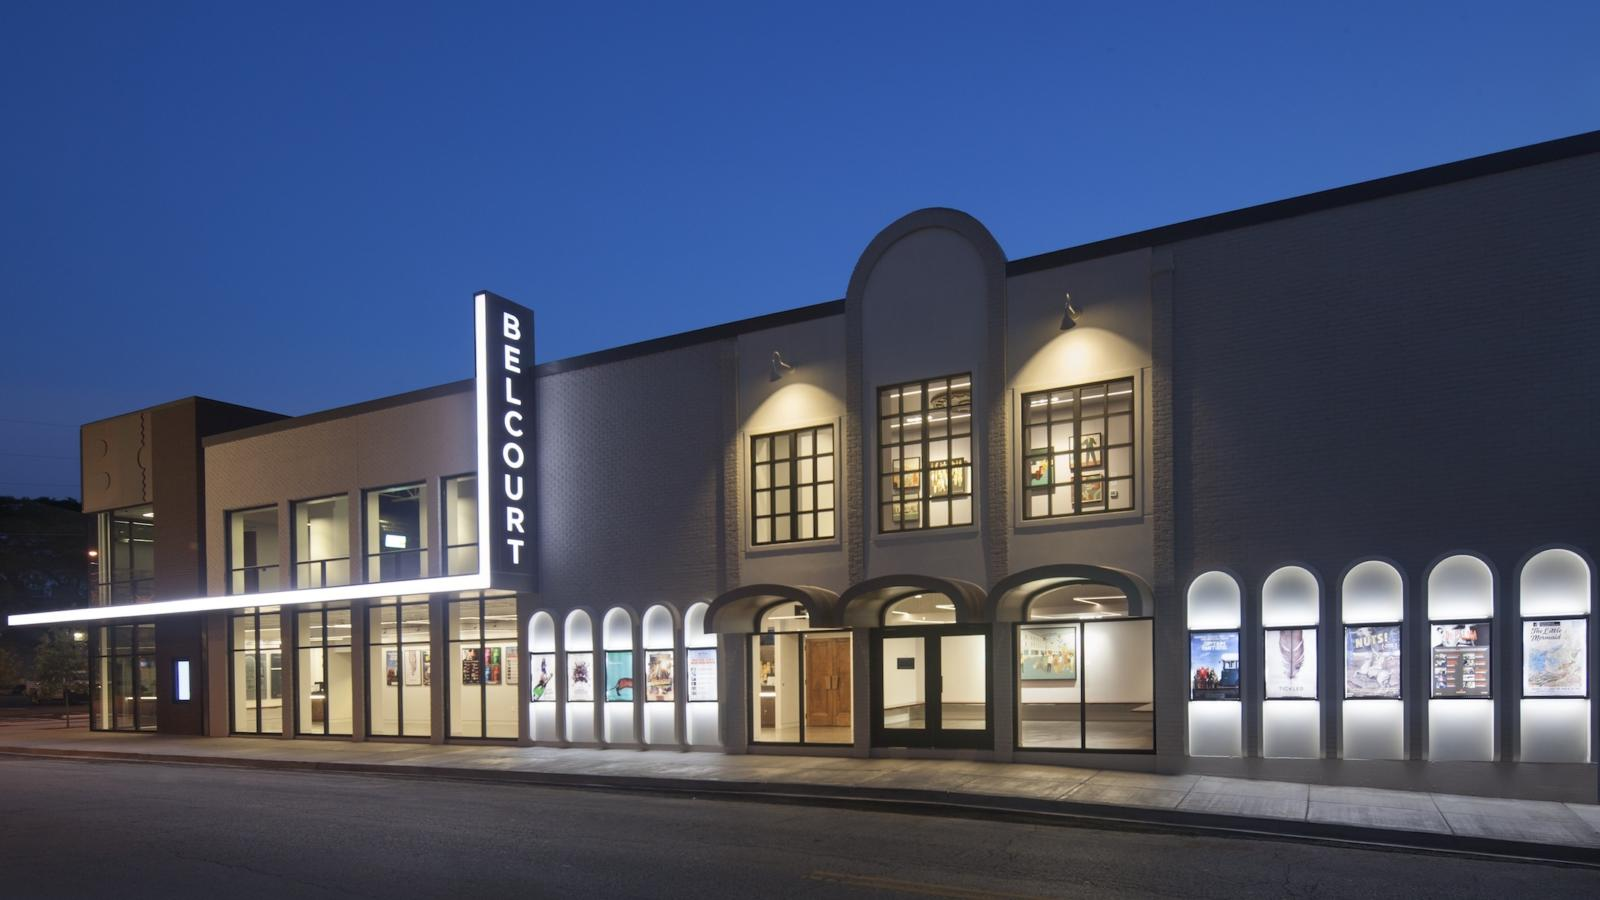 The Belcourt Theatre in Nashville